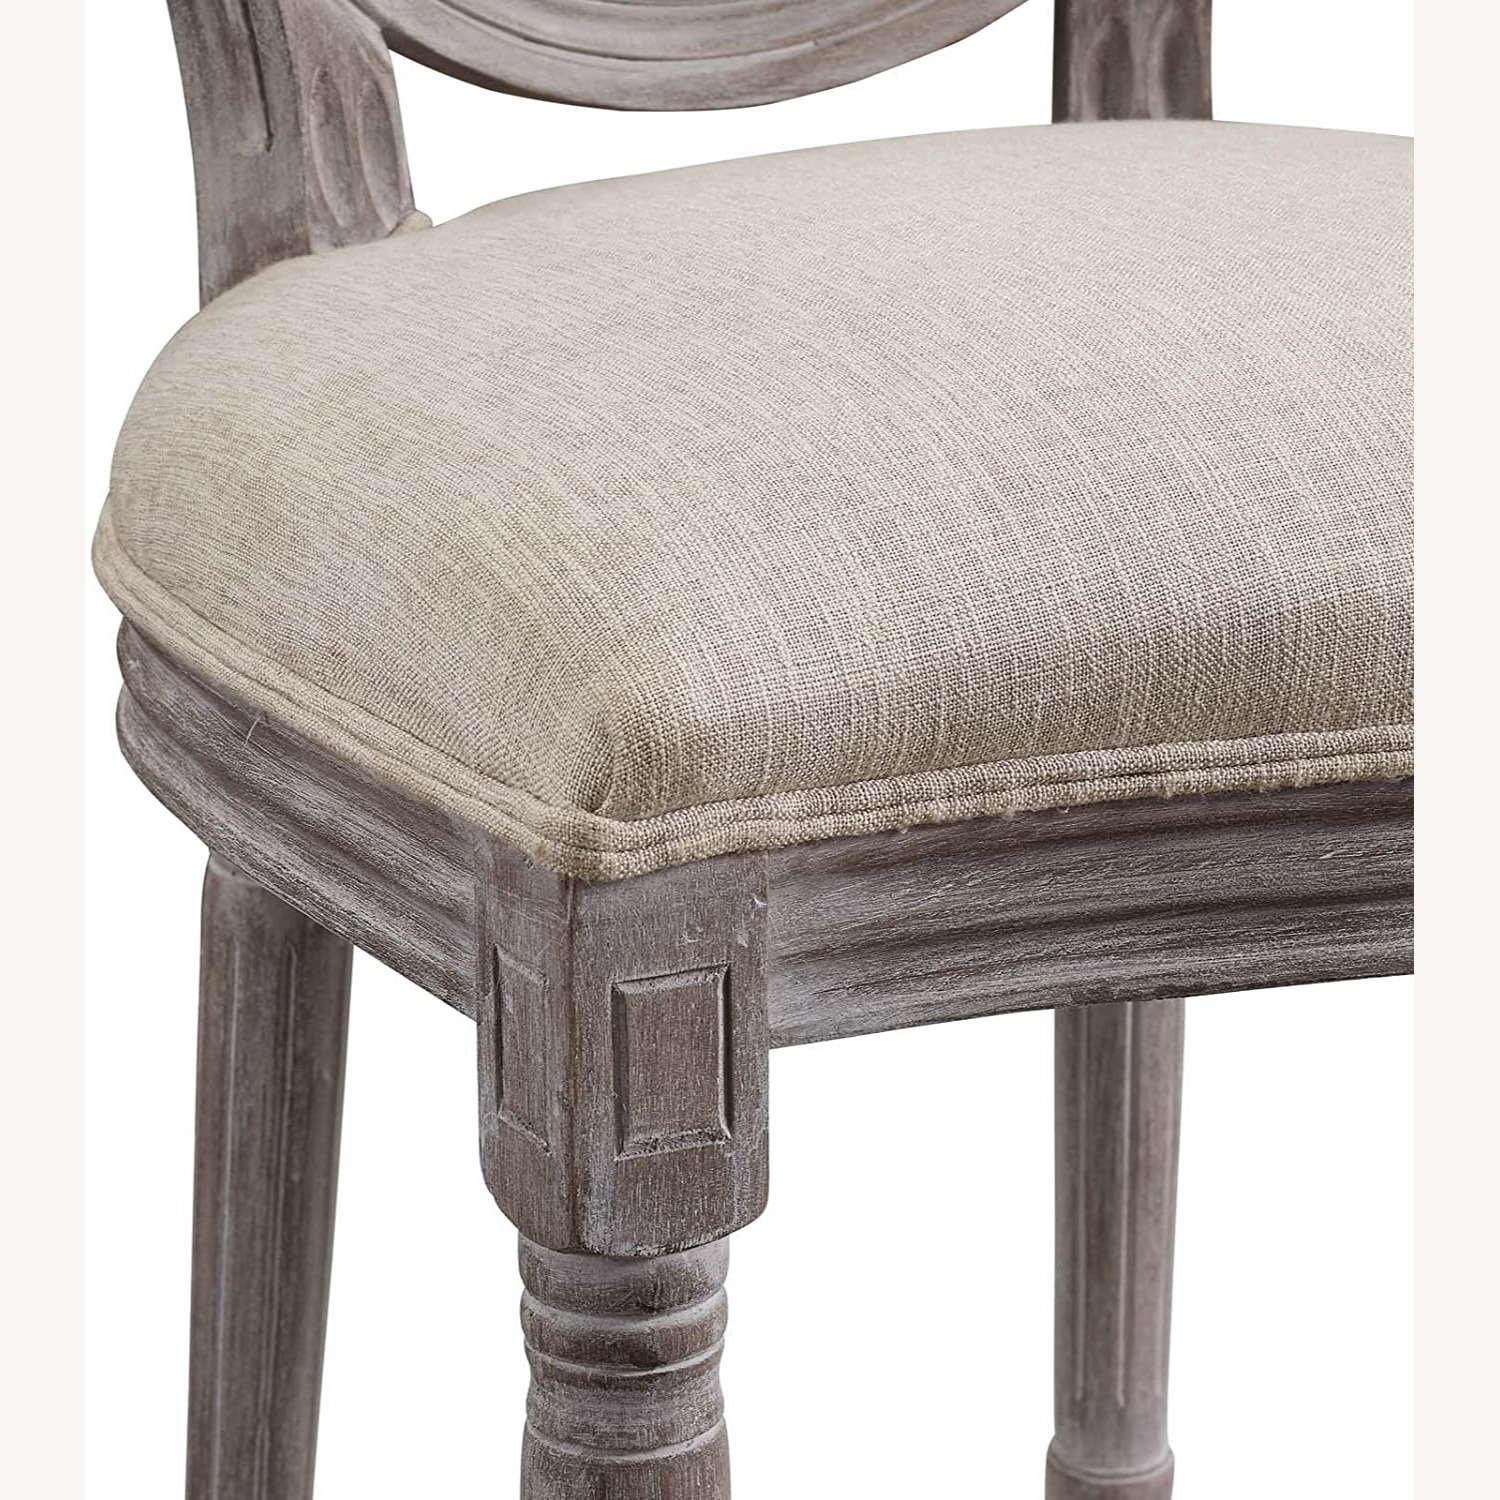 Traditional Dining Chair In Beige Fabric Finish - image-3